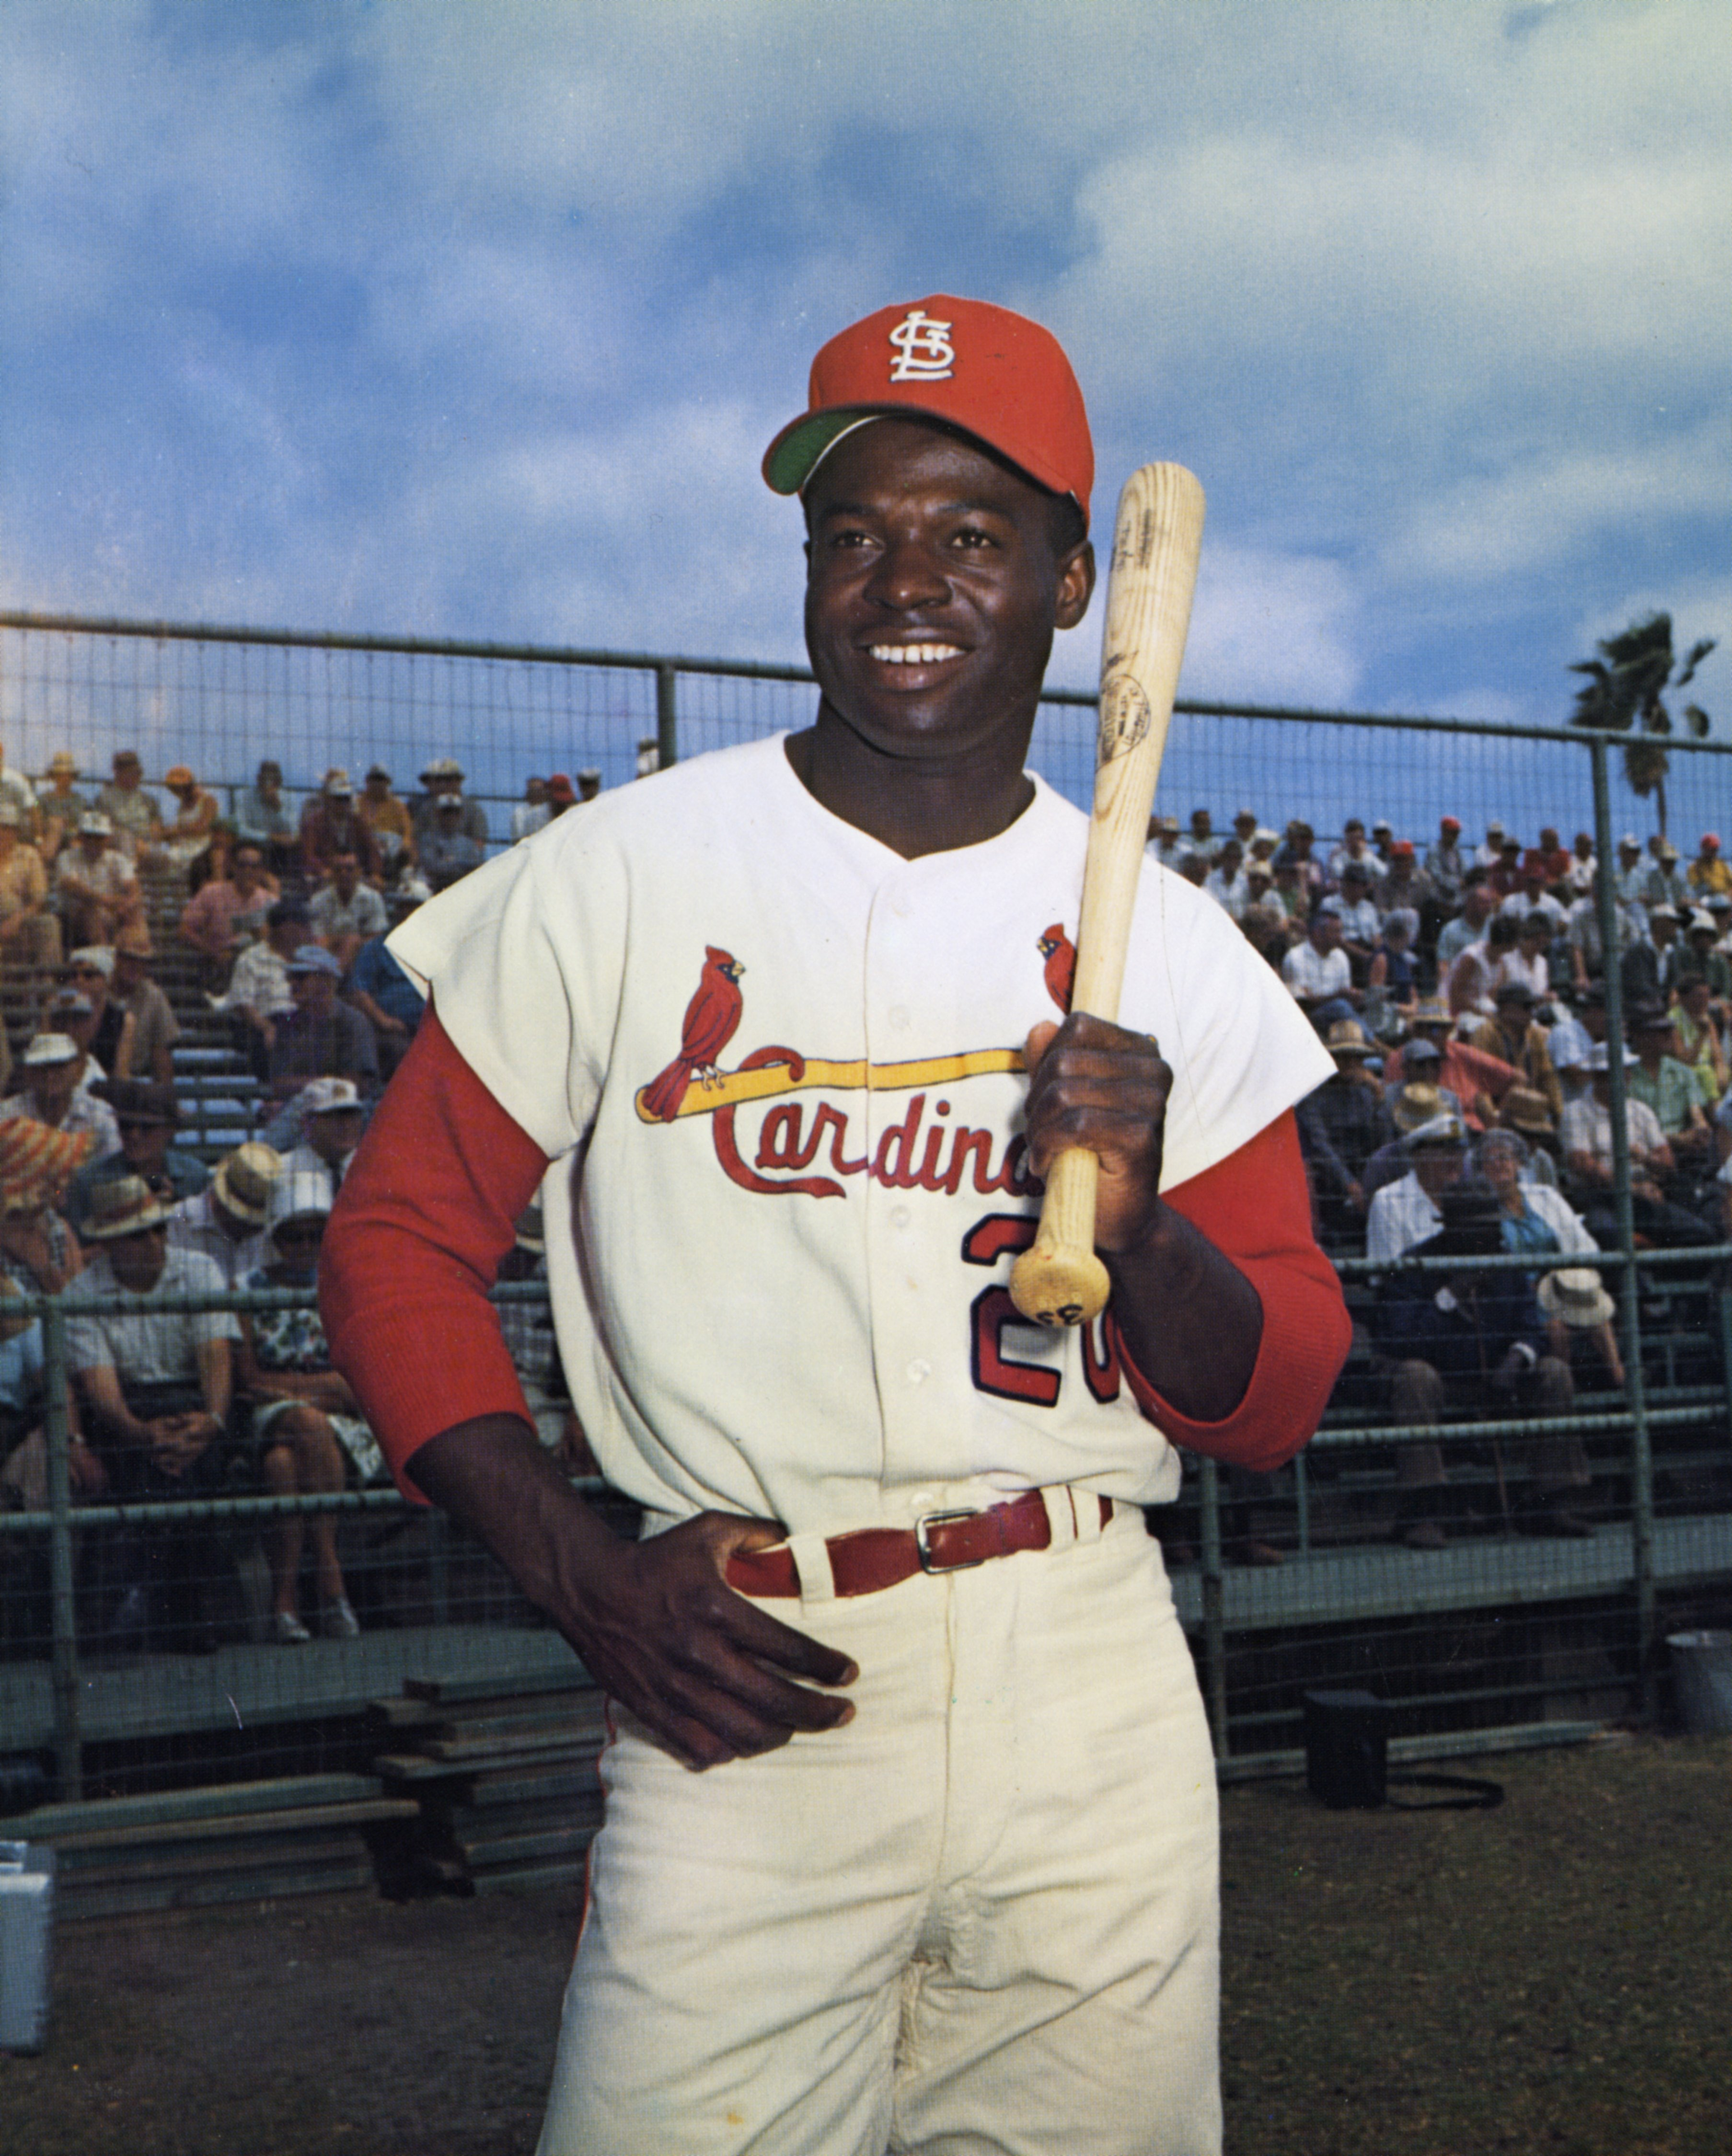 Lou Brock poses for a photograph at the St. Louis Cardinals spring training camp in March, 1965 in St. Petersburg, Florida. | Source: Getty Images